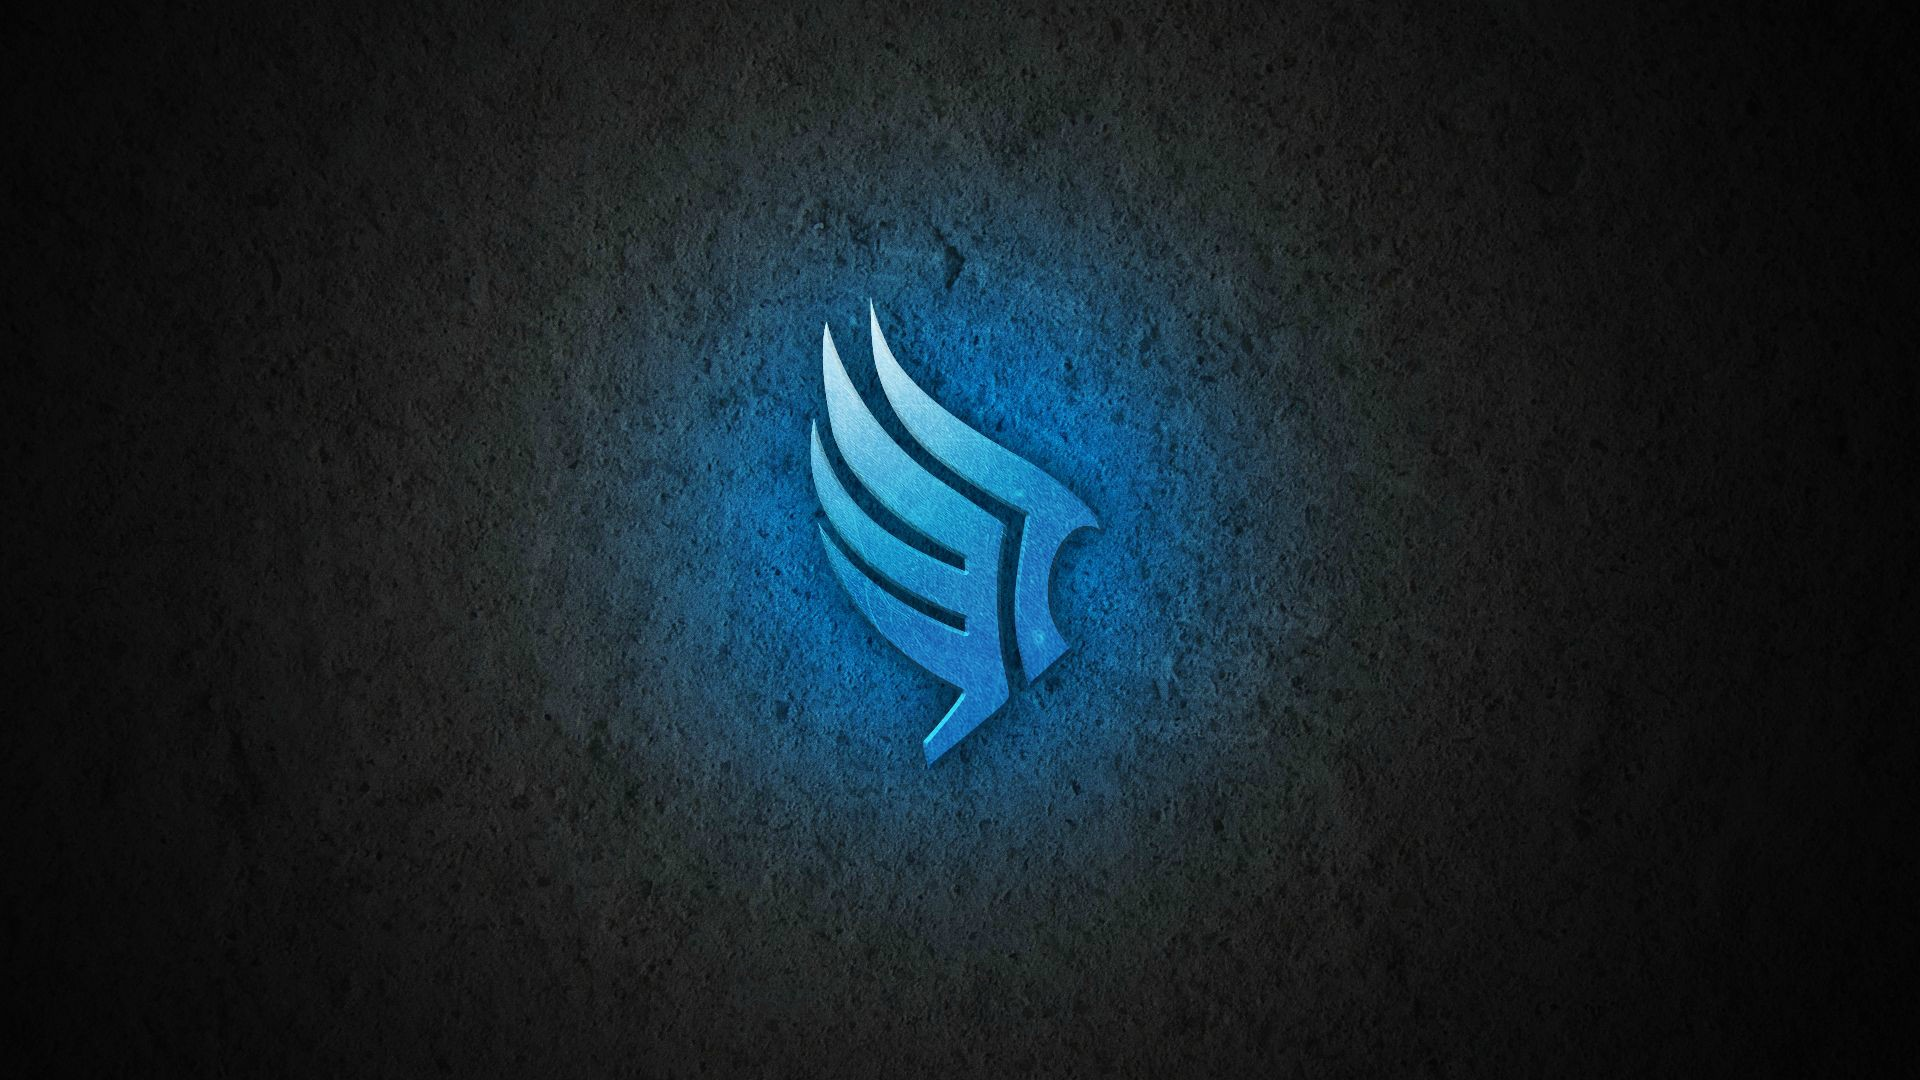 10 Most Popular Black And Blue Gaming Wallpaper Full Hd: Gaming Wallpapers